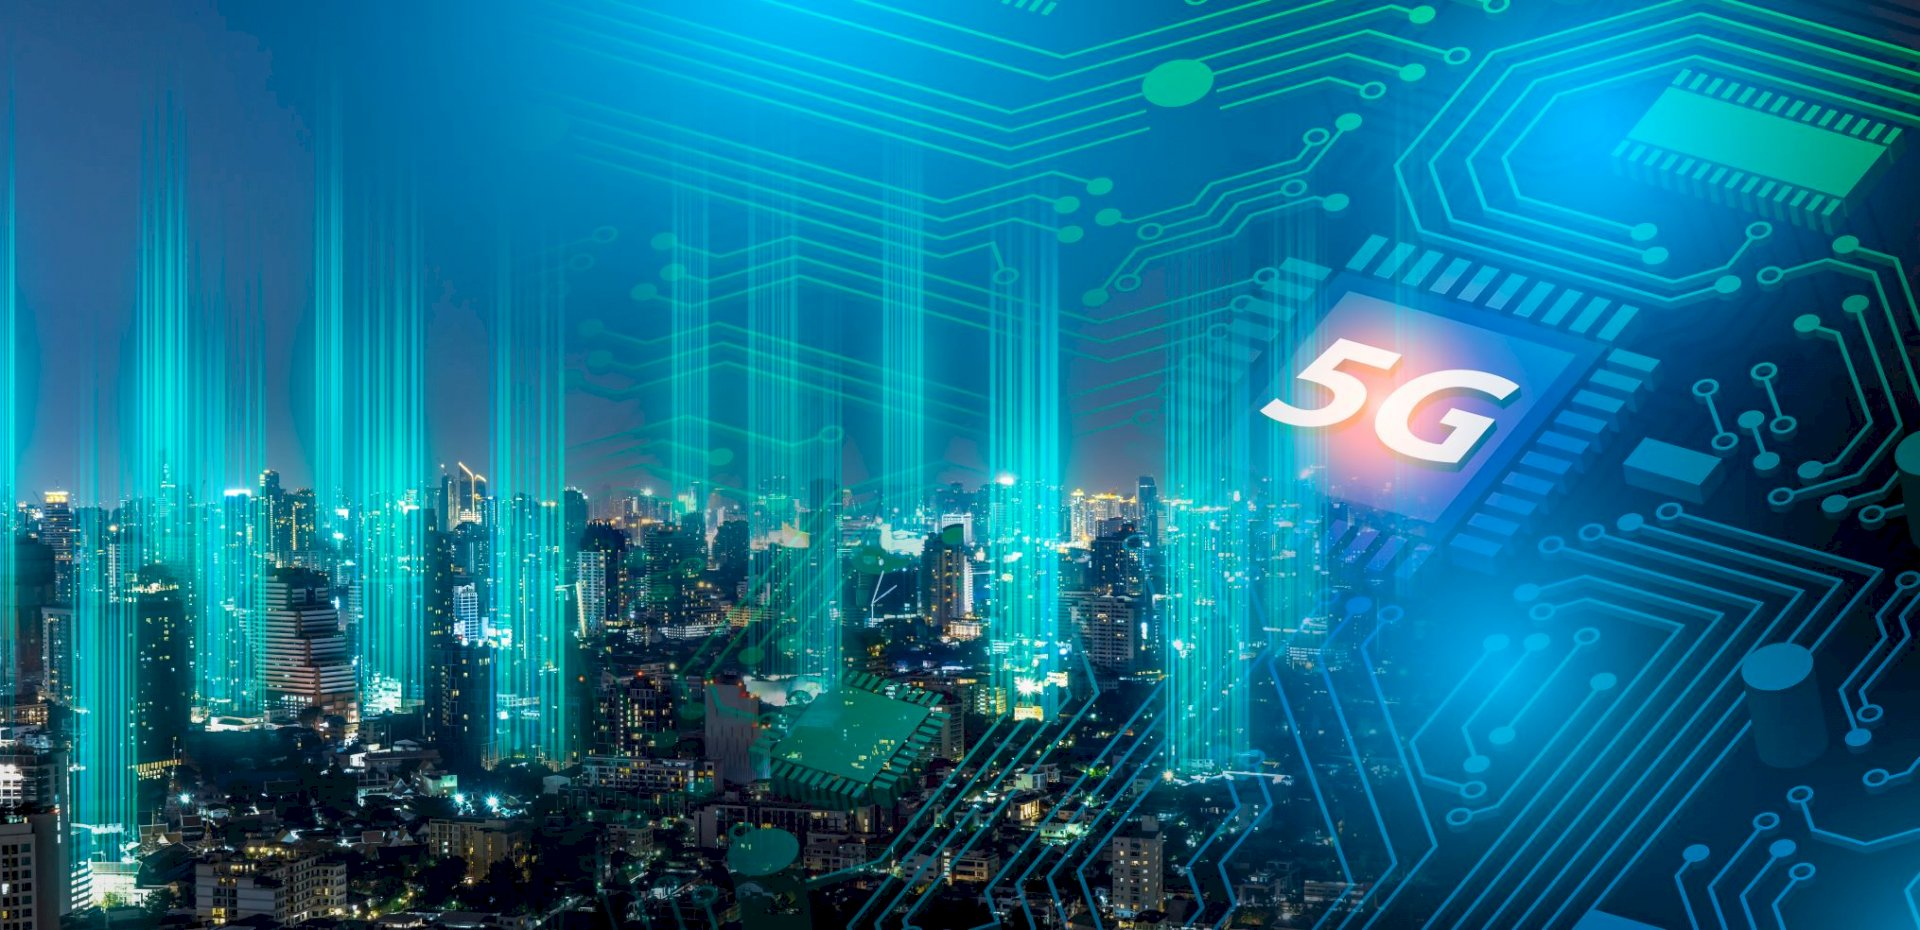 5G in de industrie